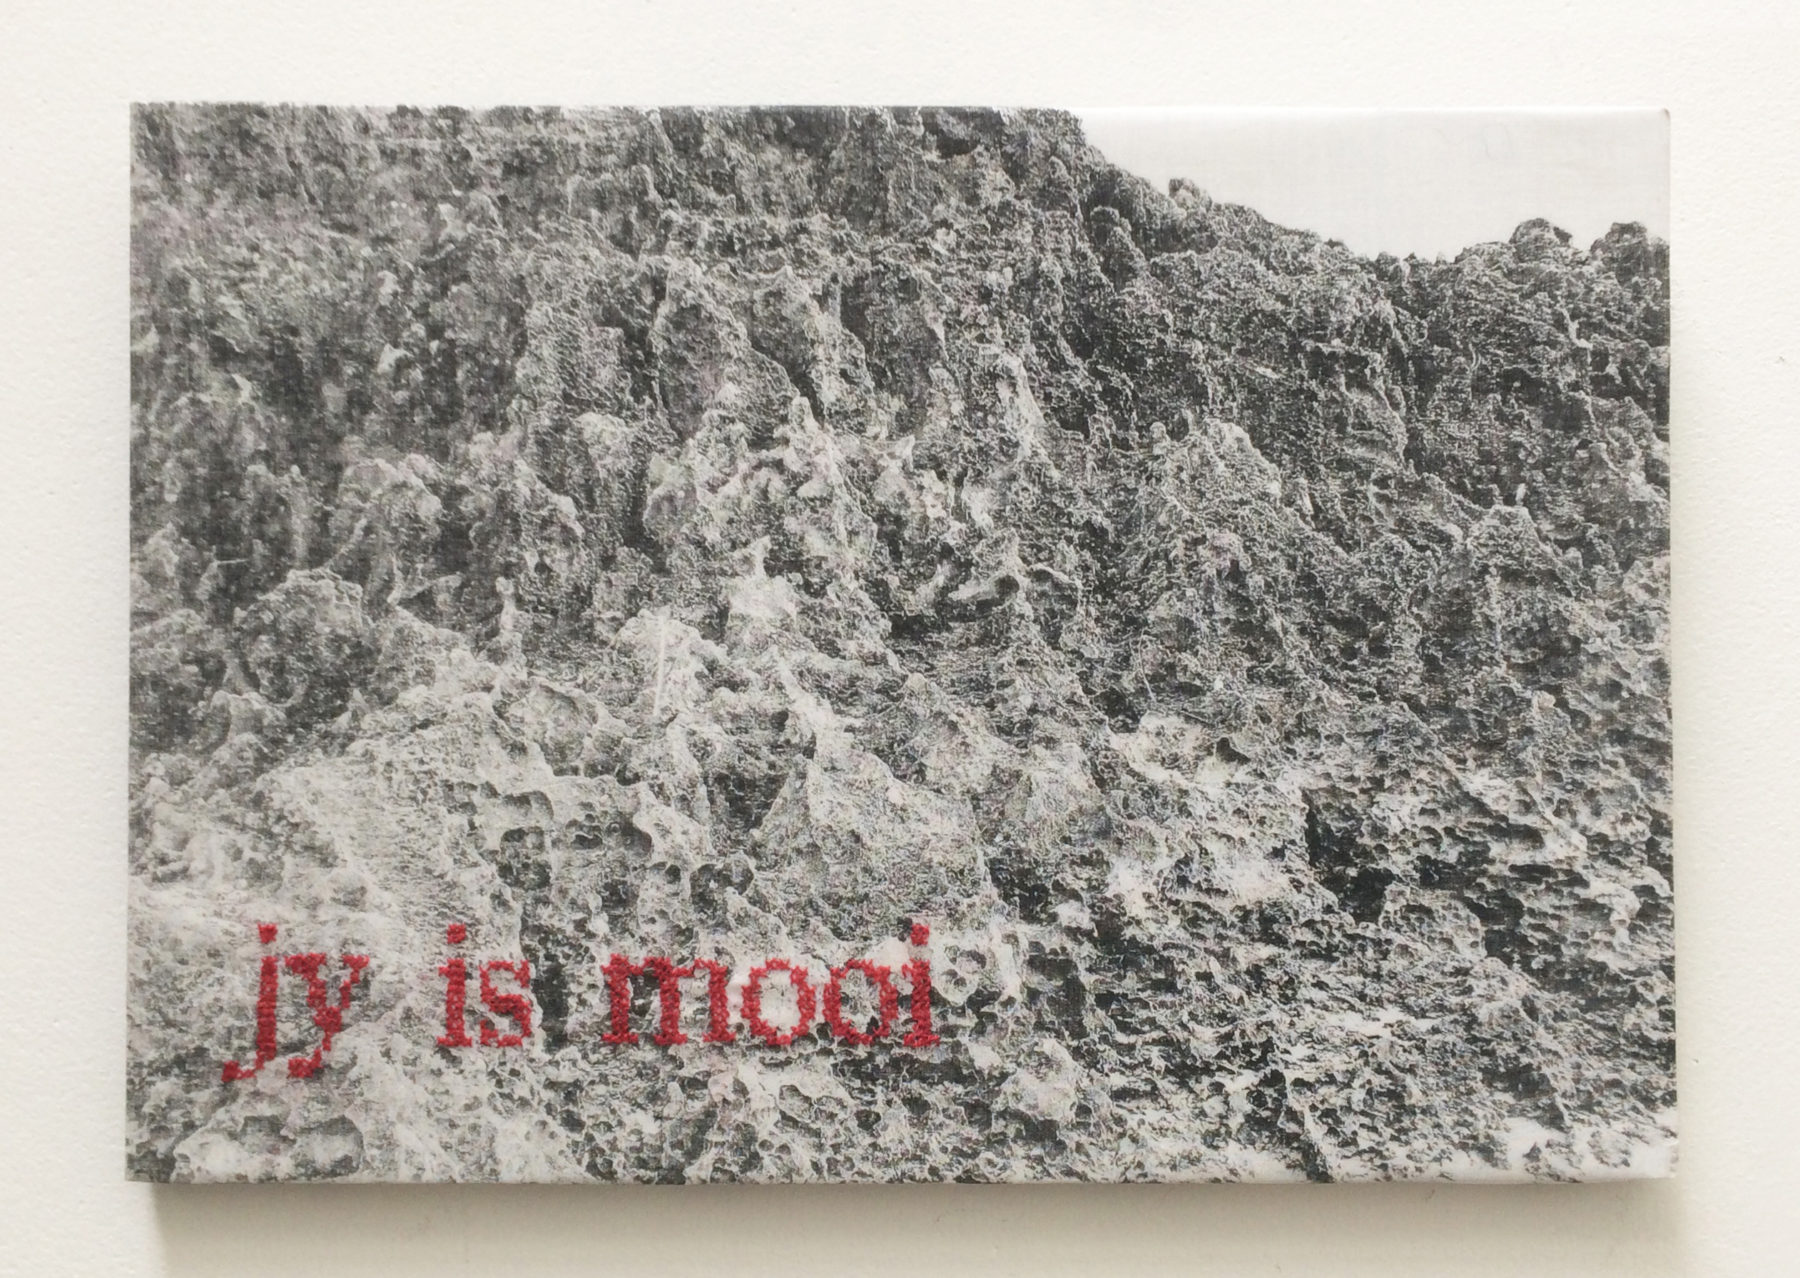 'jy is mooi' - (South Africa)- silkscreen on canvas -text embroideredby hand - 25 x 35 cm - 2014